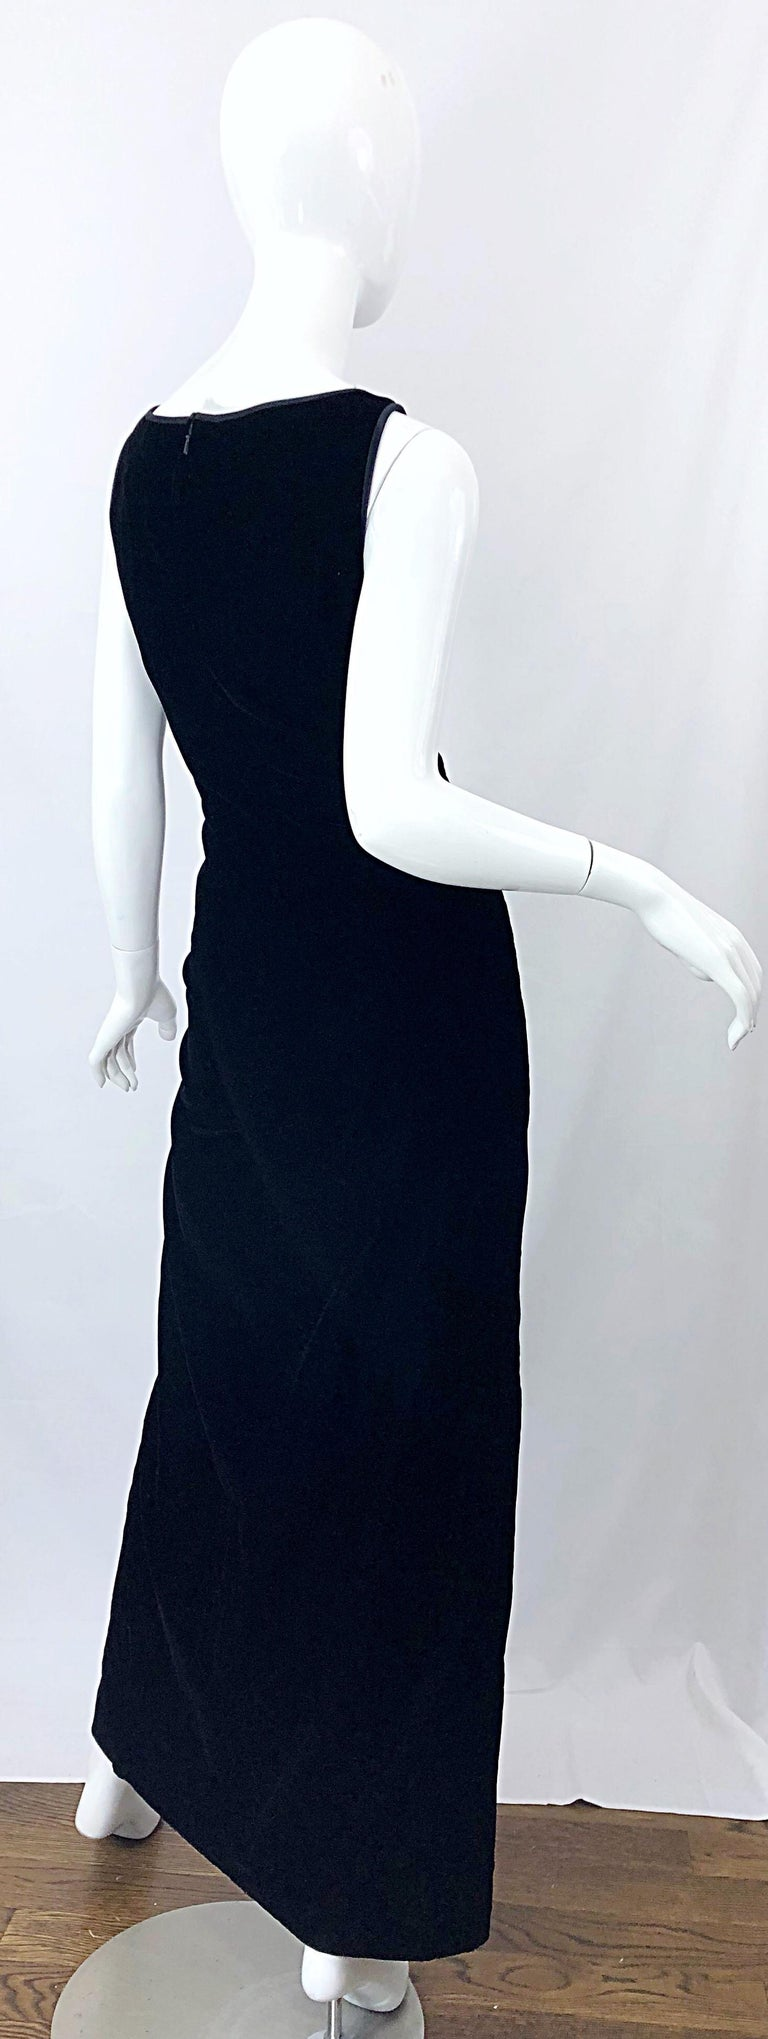 Vintage Bob Mackie Size 14 Black Velvet 1990s Sleeveless Sweetheart 90s Gown In Excellent Condition For Sale In Chicago, IL